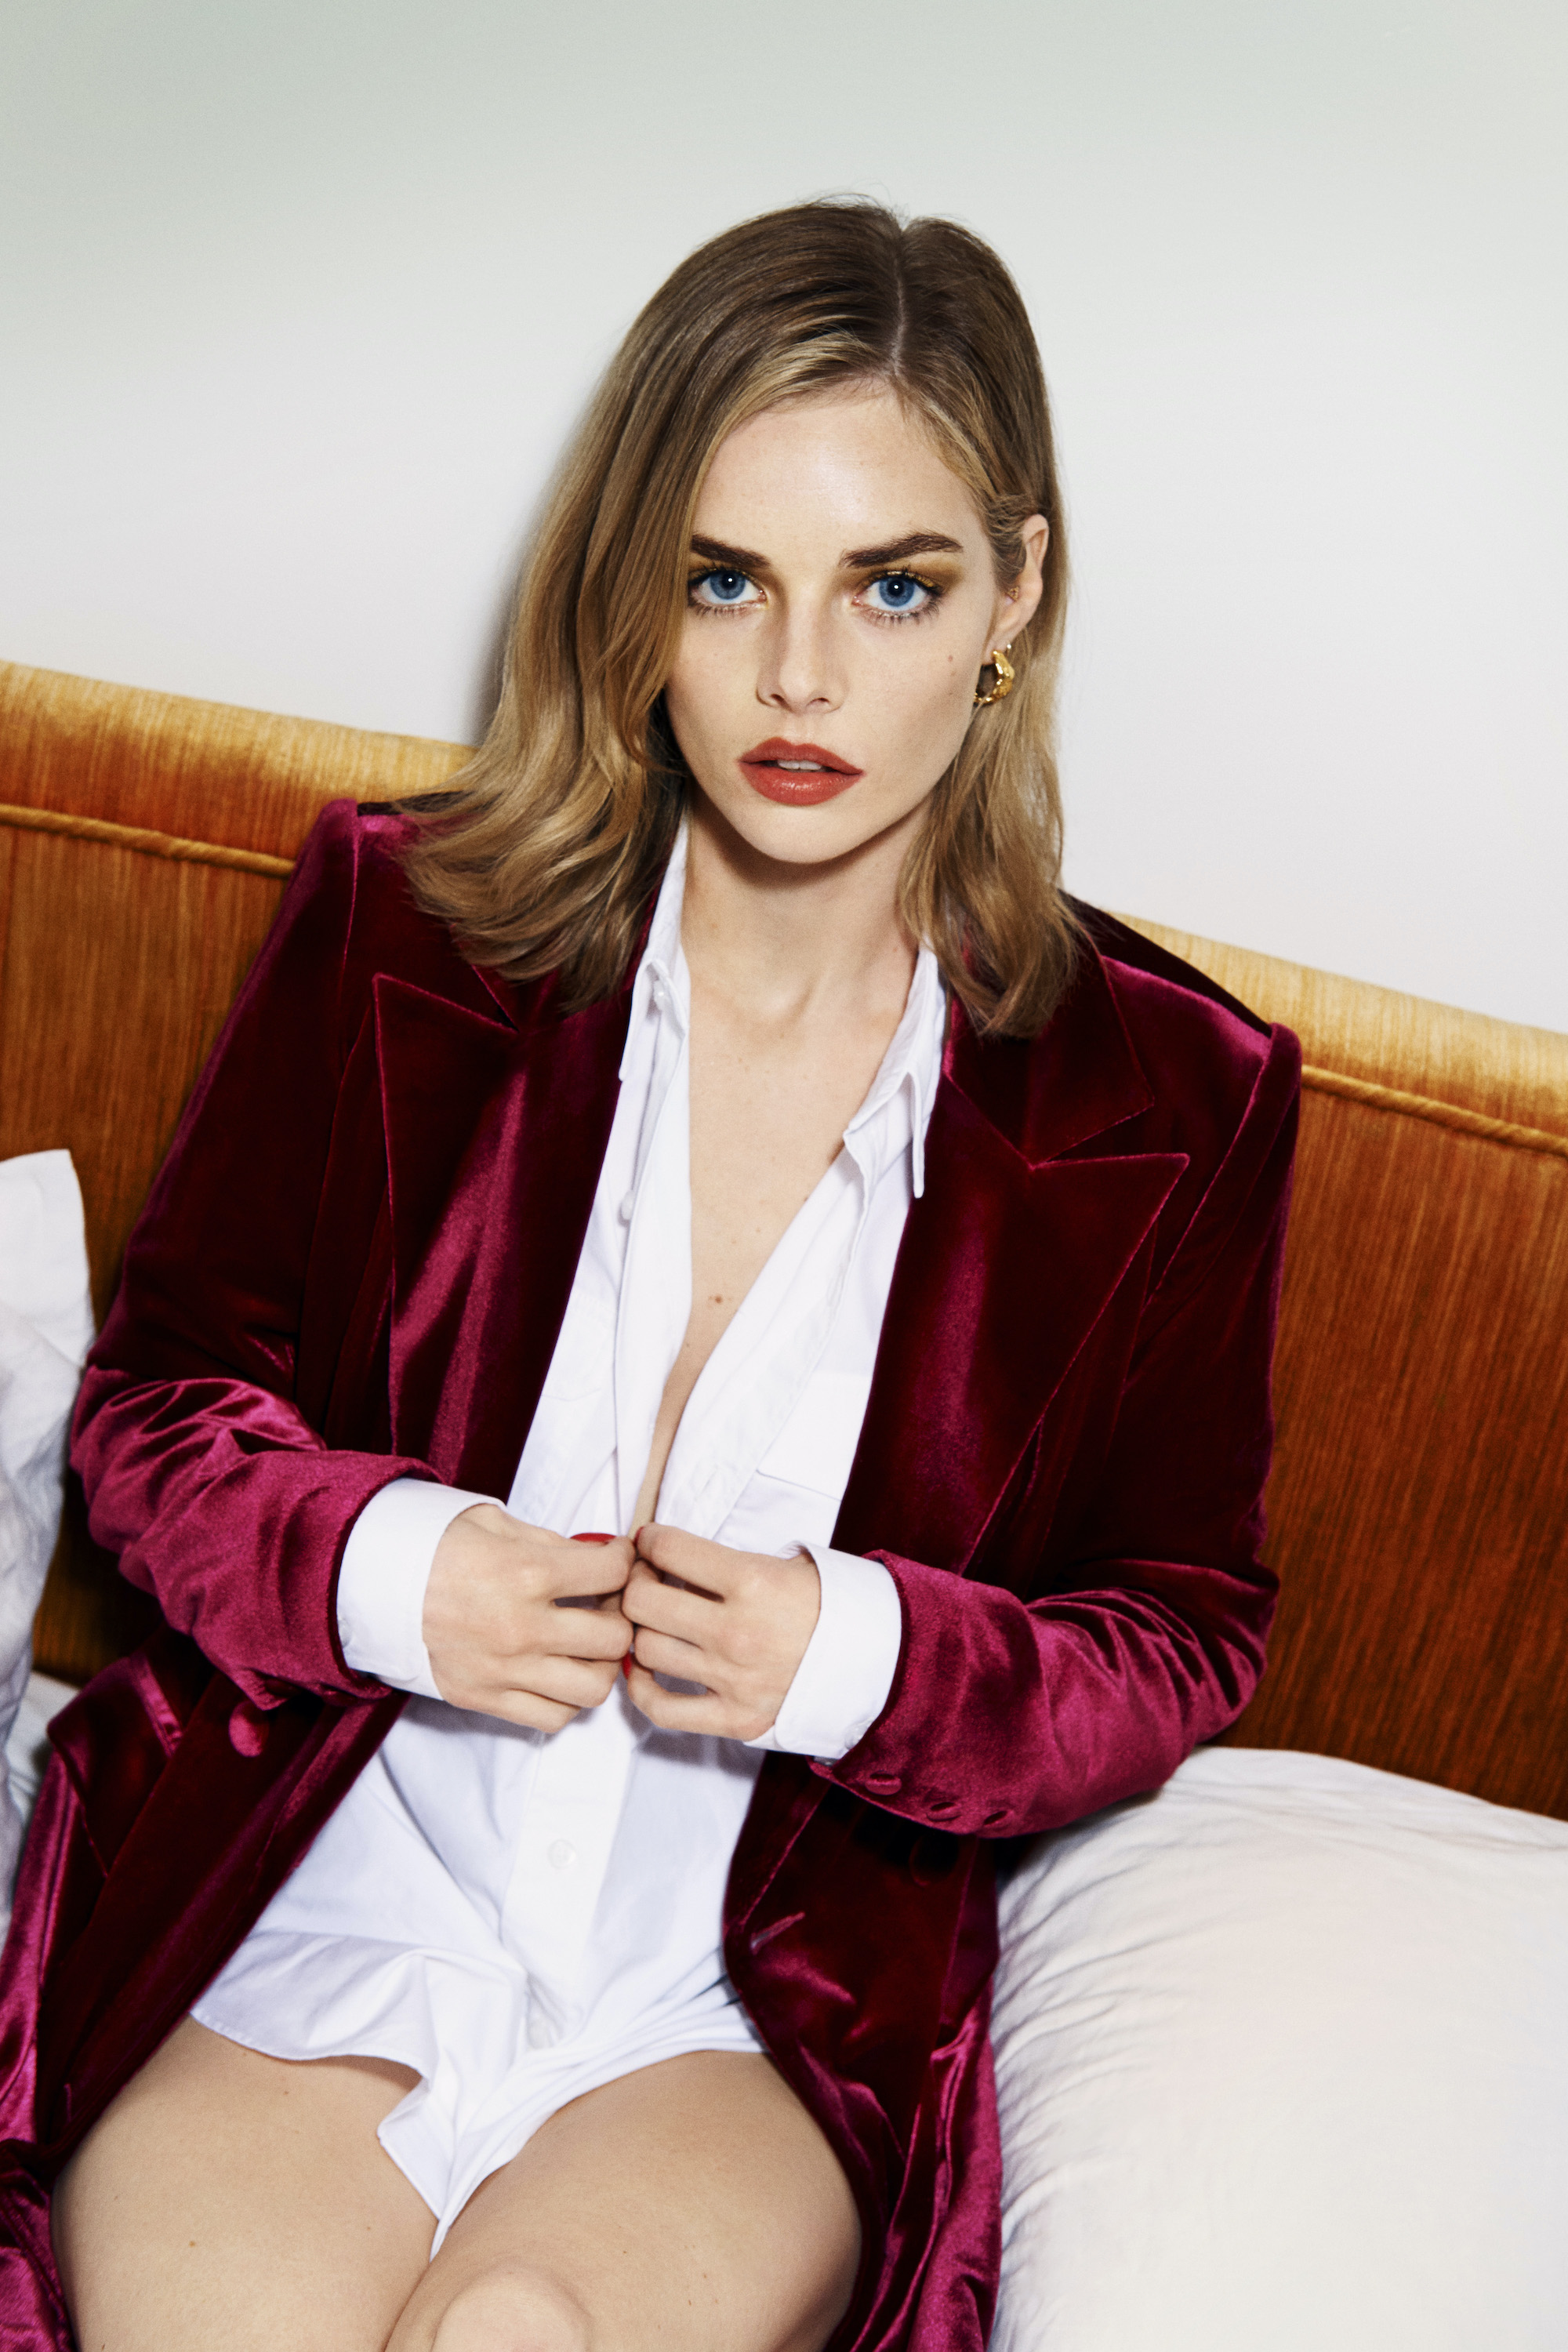 Samara weaving in white shirt and red jacket